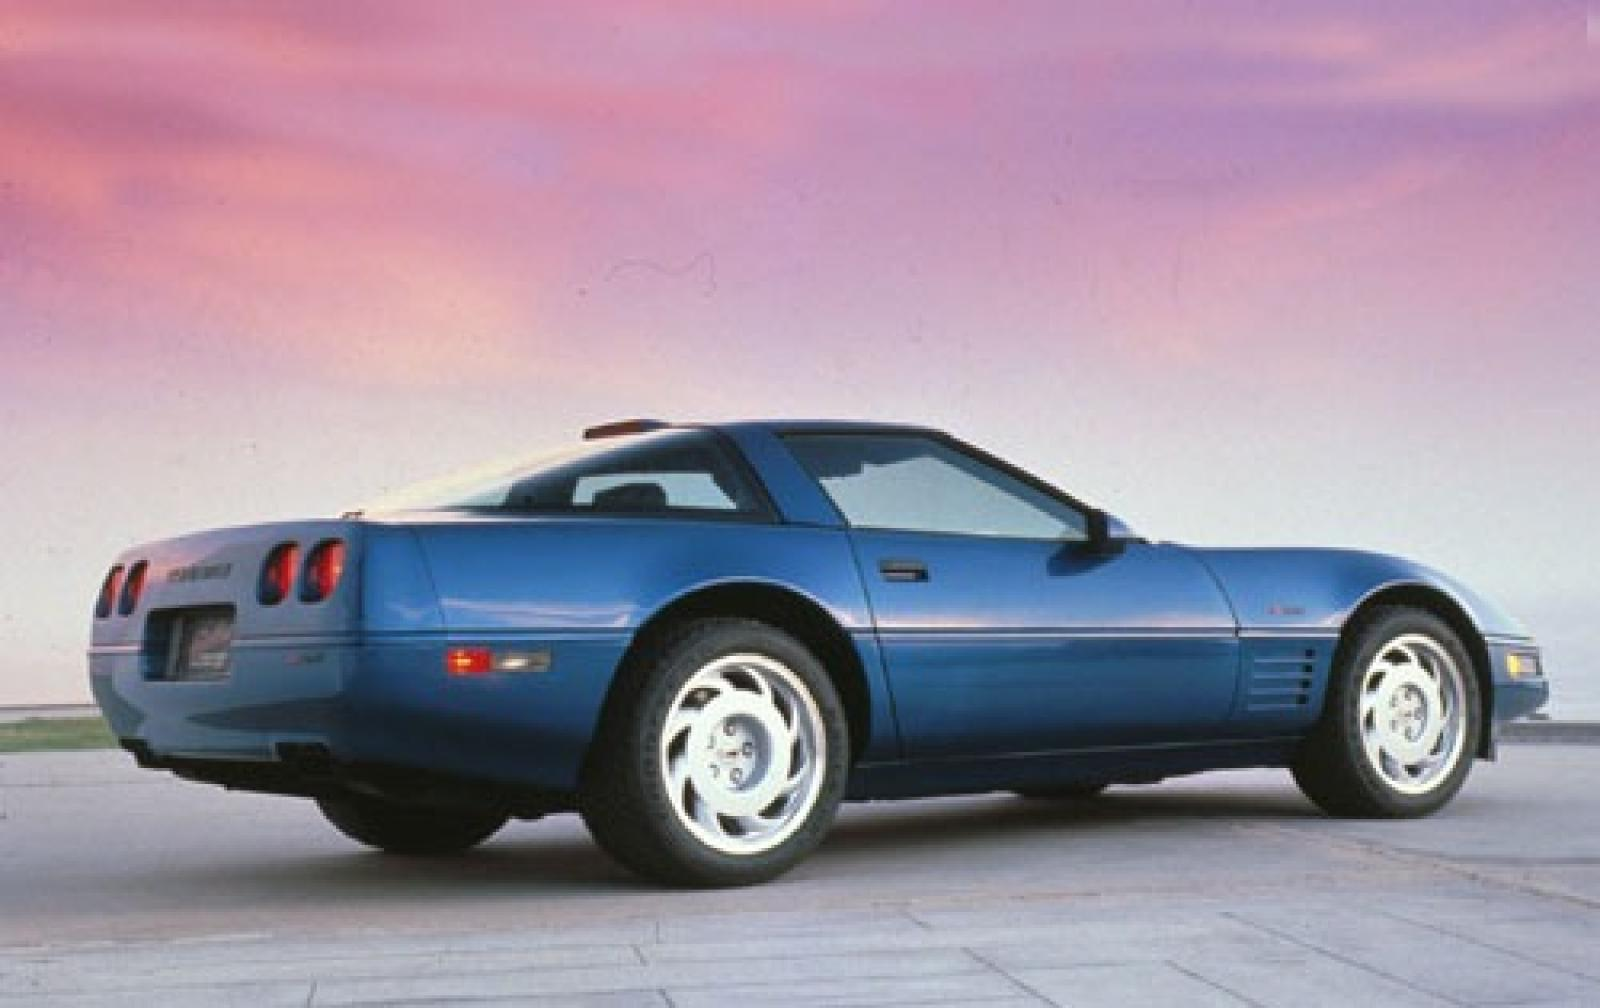 1994 Chevrolet Corvette Information And Photos Zomb Drive